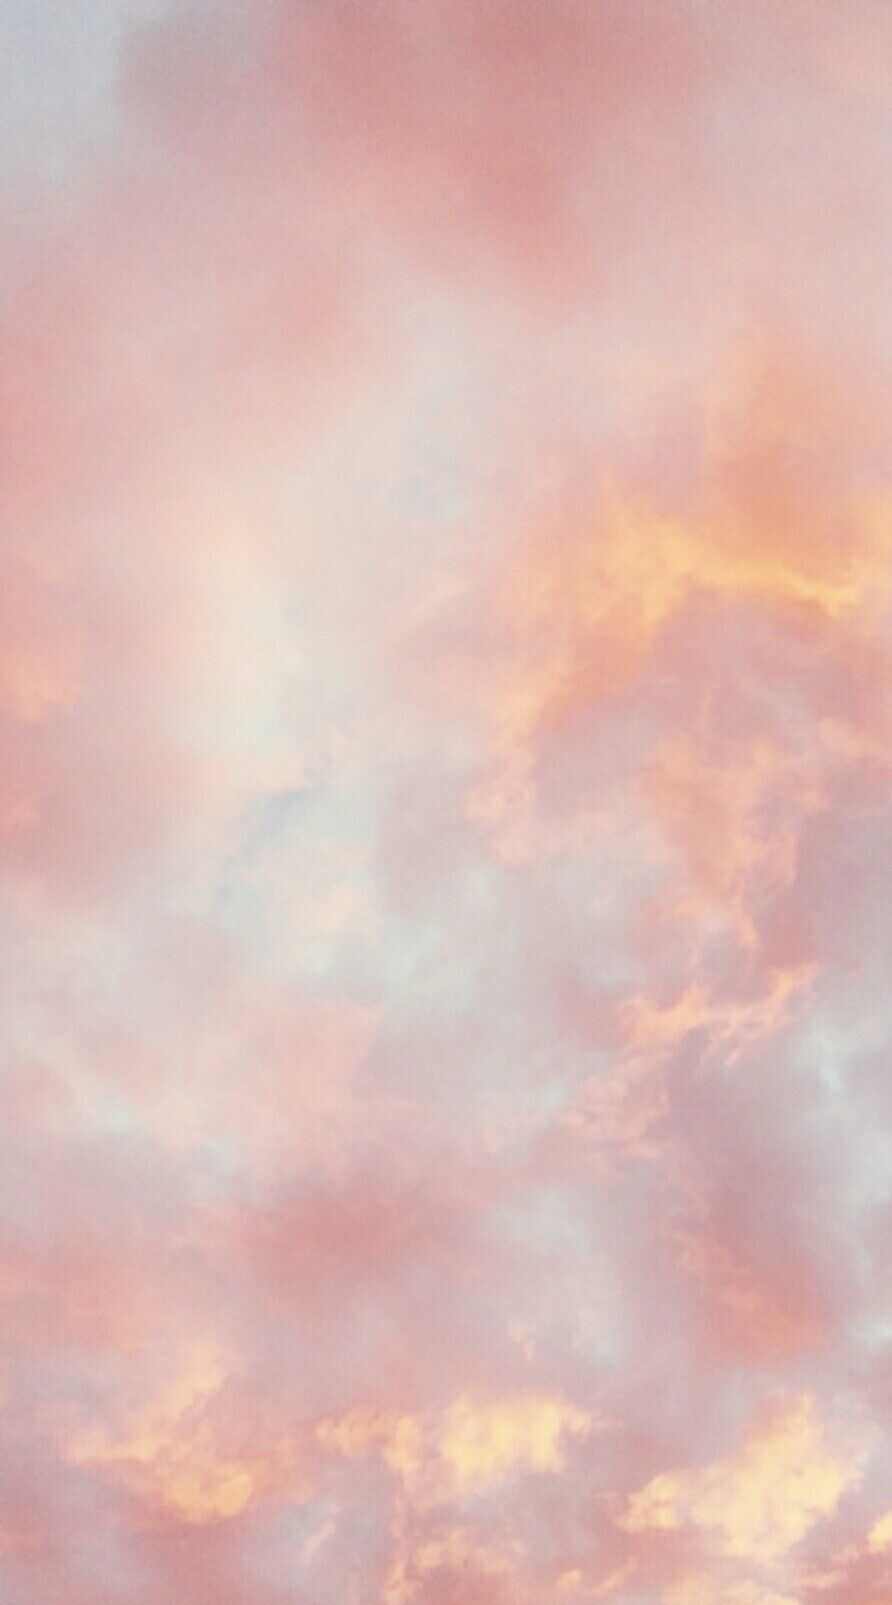 List of Good Cloud Wallpaper for Android Phone This Month